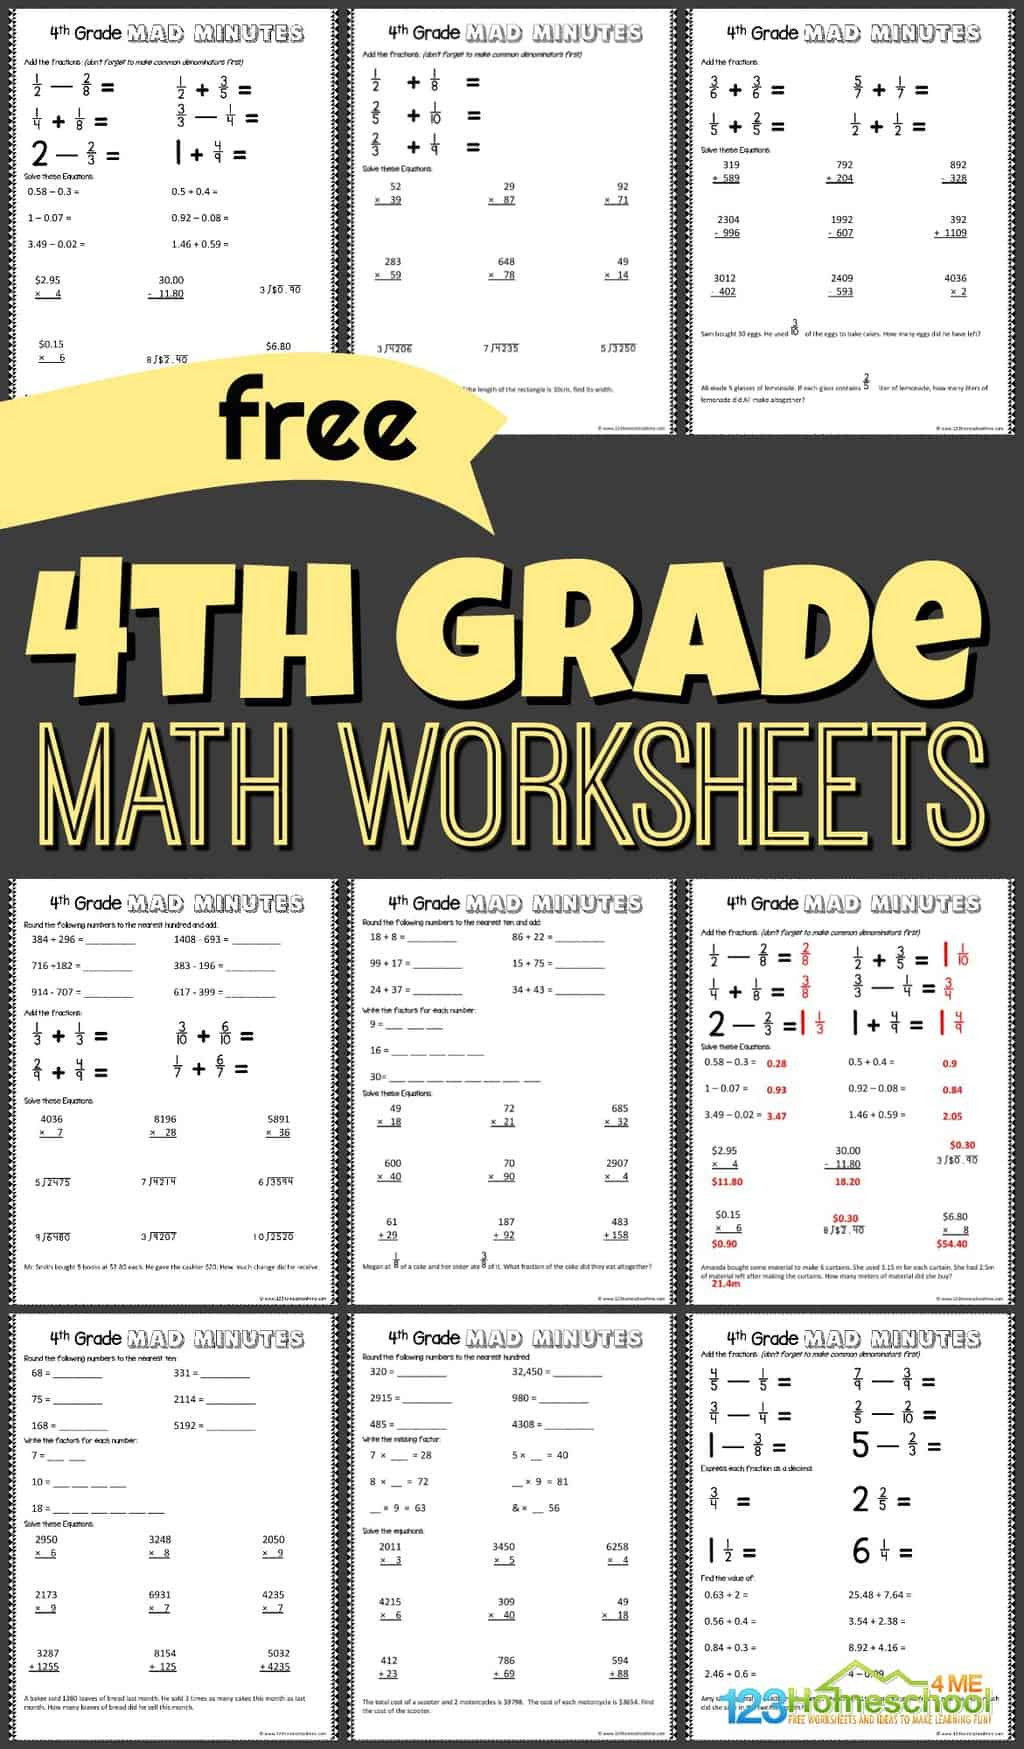 Free Printable Abeka Worksheets Free 4th Grade Math Worksheets Fourth Printable Abeka